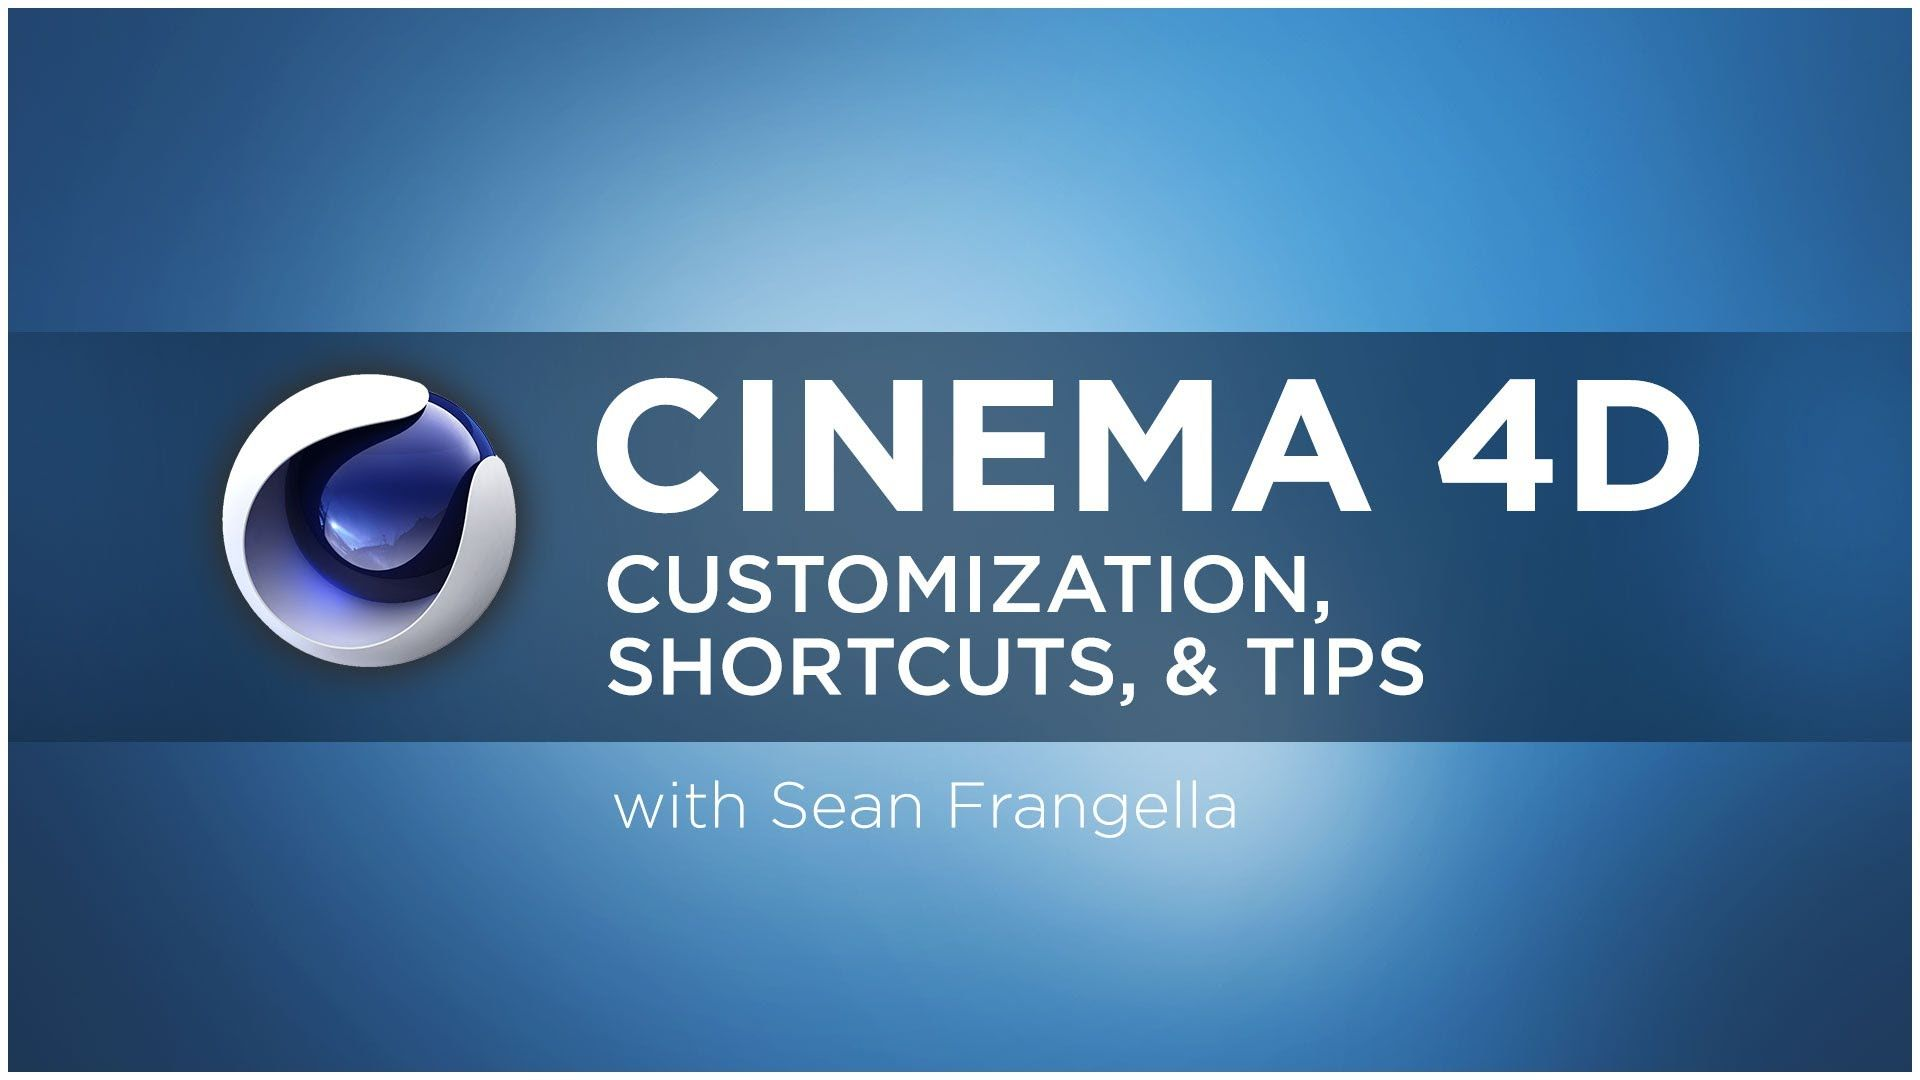 In this cinema 4d tutorial learn many beginner tips and